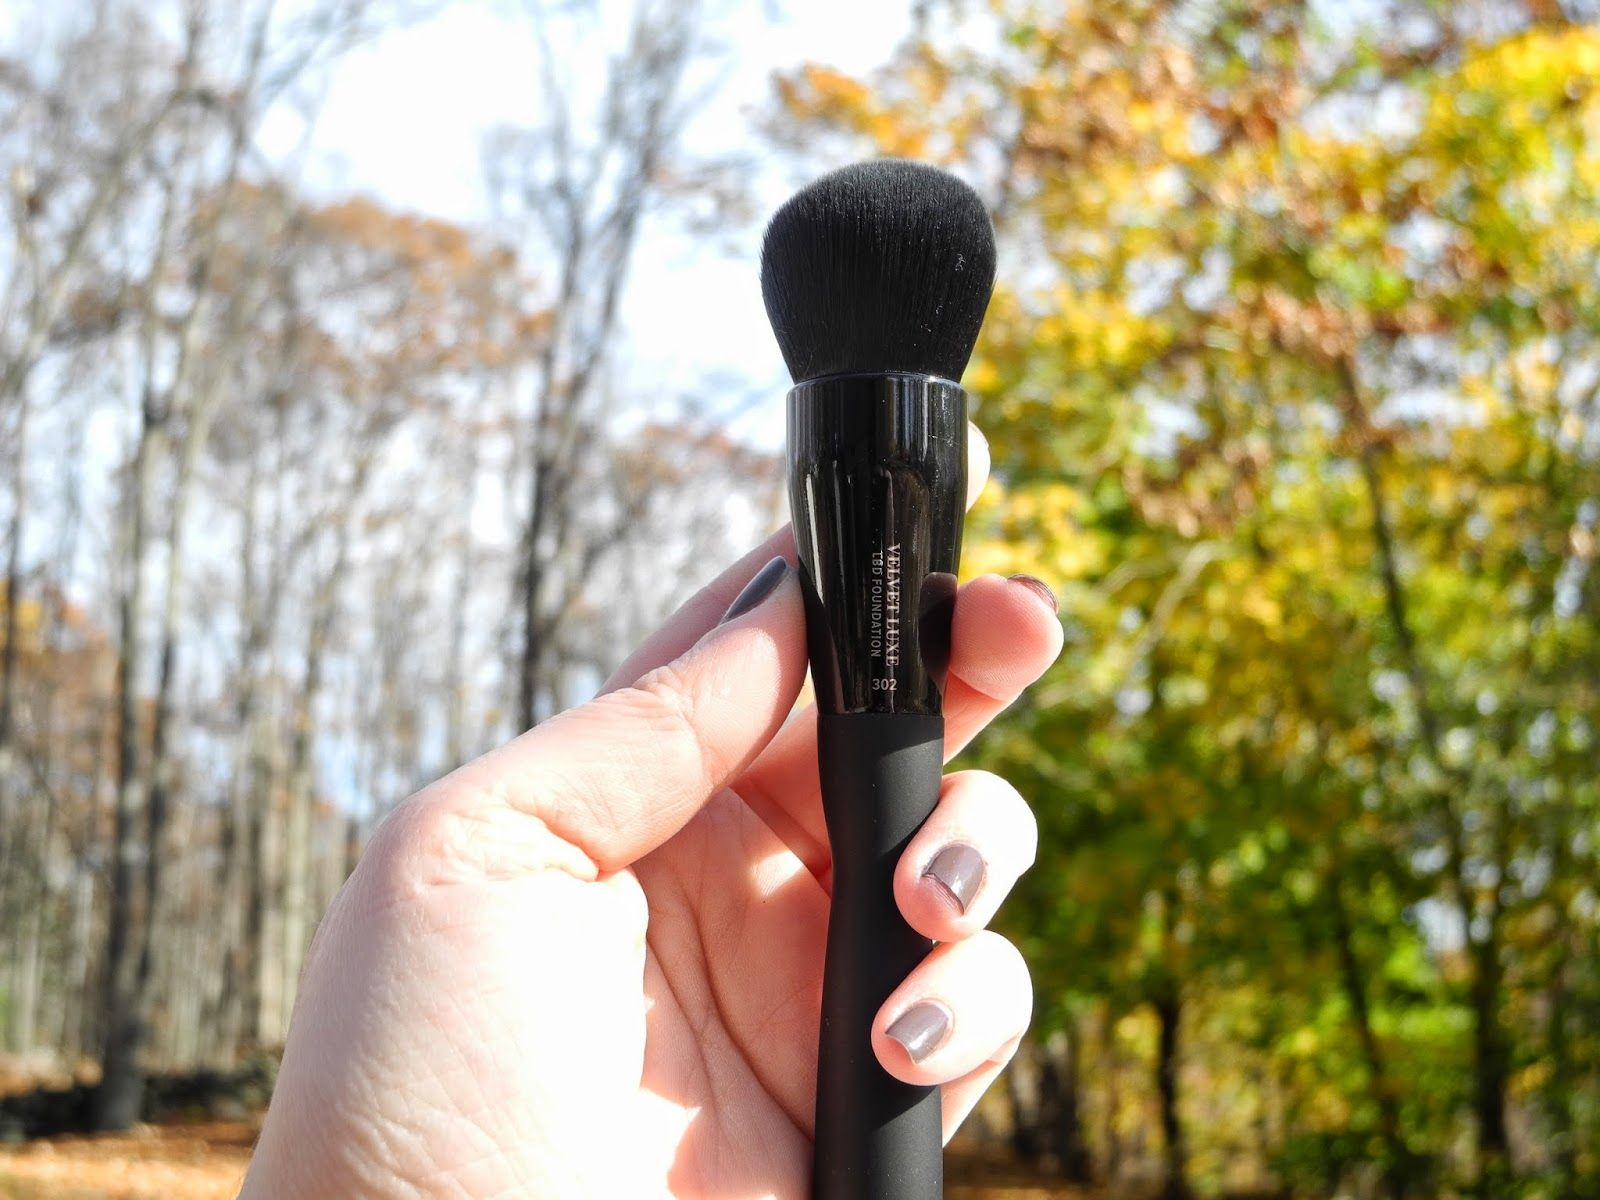 IT Cosmetics Brushes for ULTA Review It cosmetics